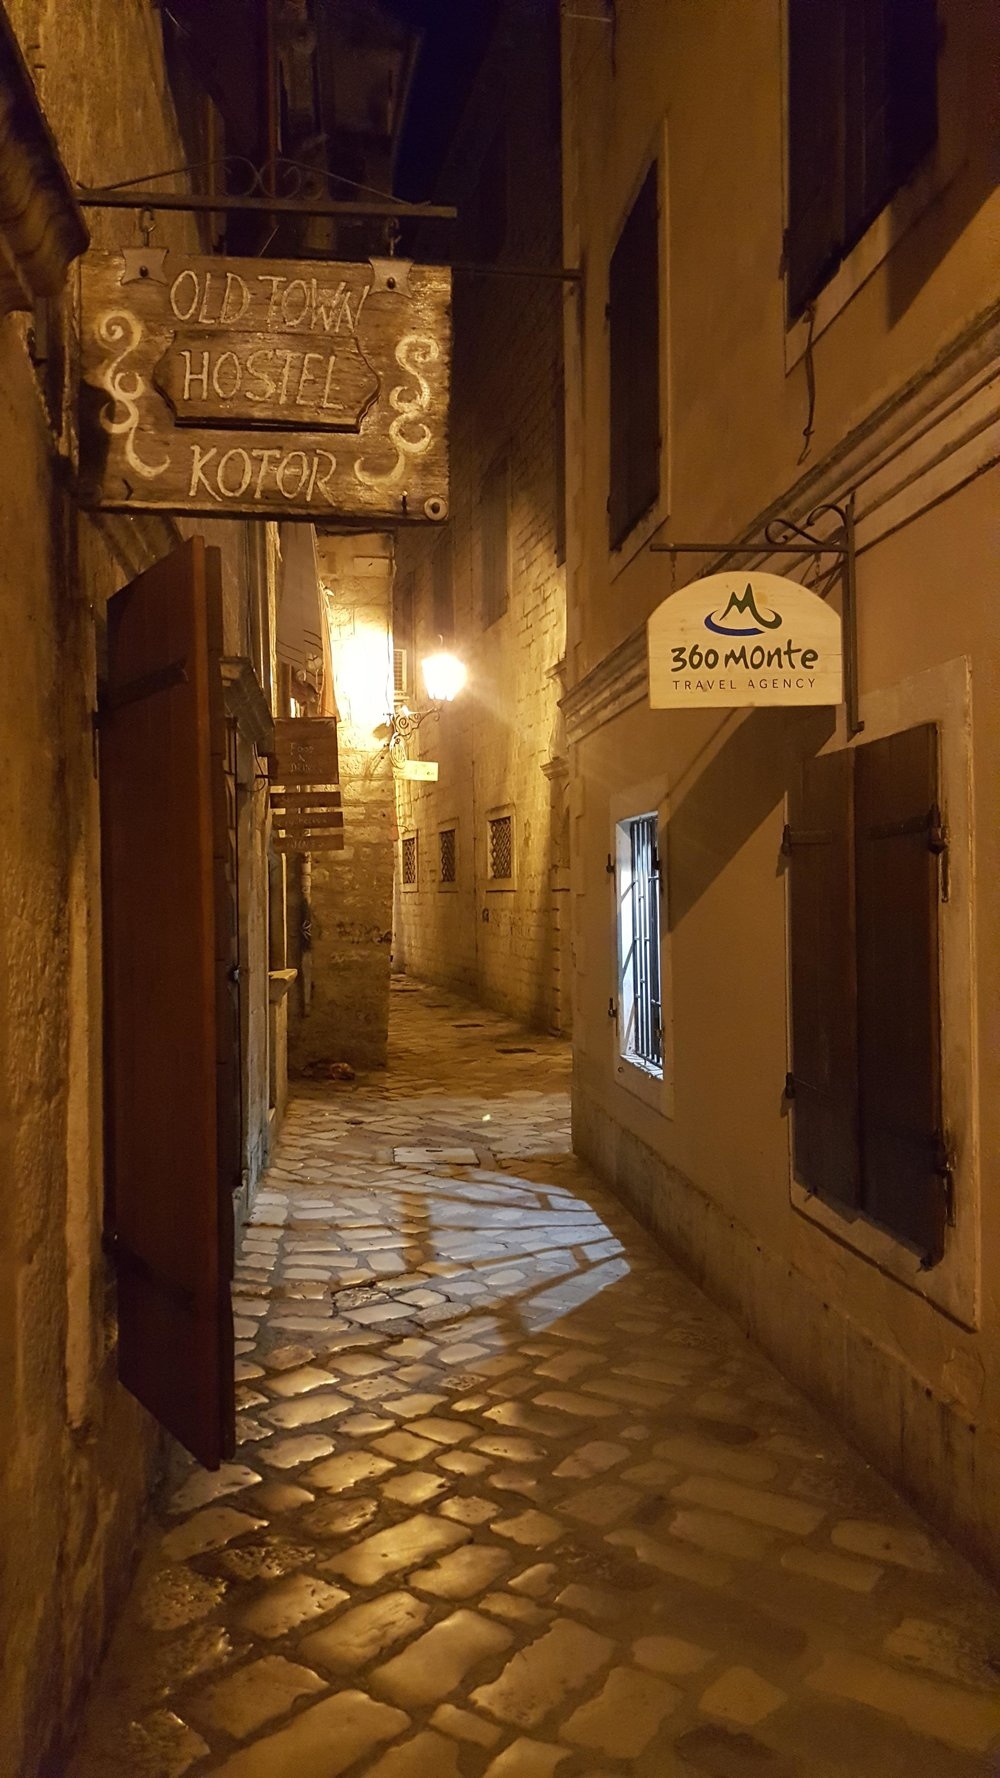 hostel-old-town-kotor